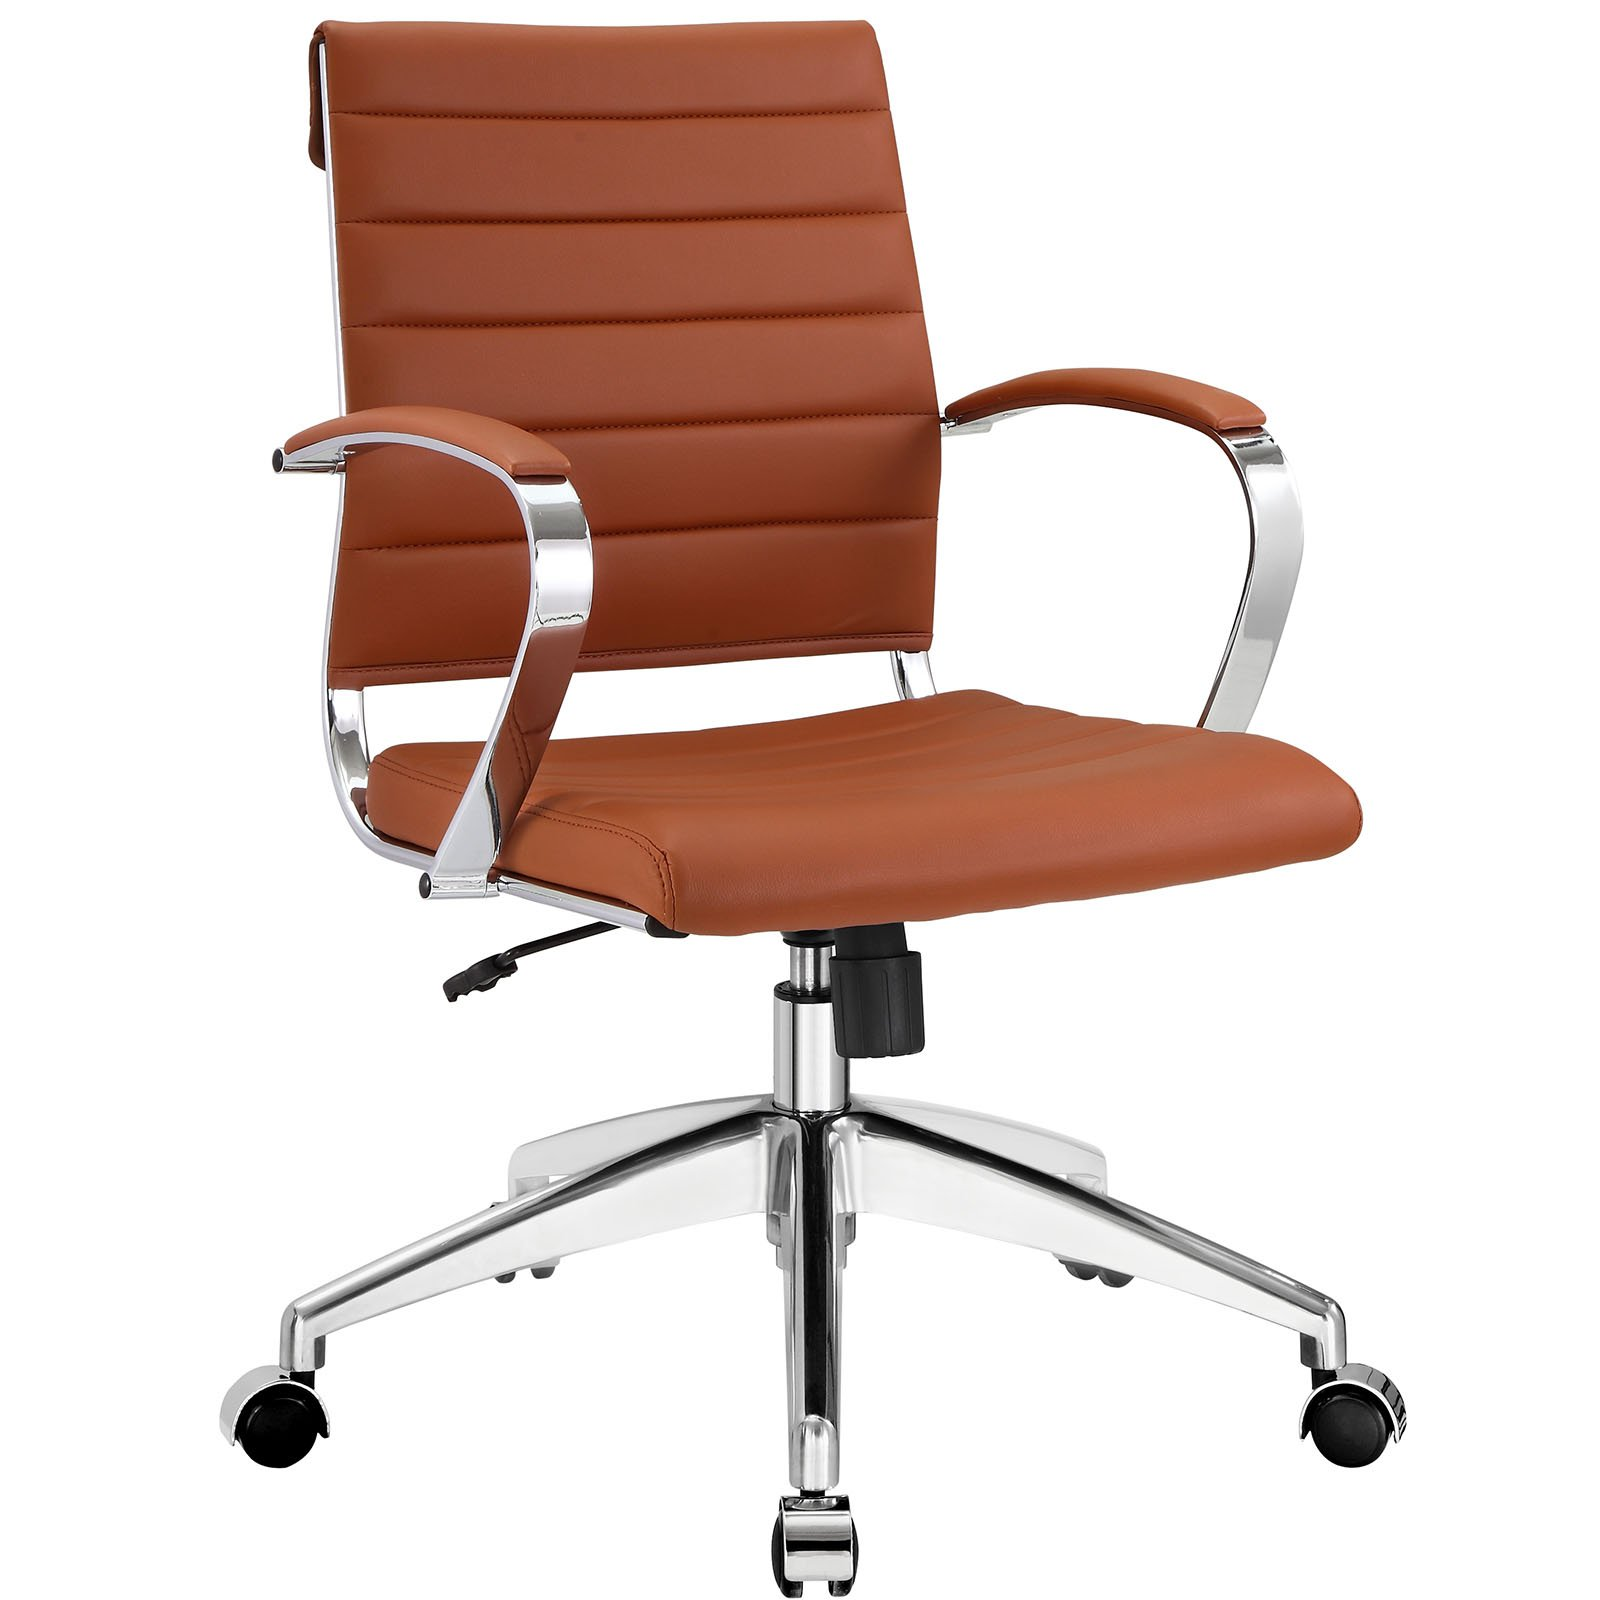 Modway Jive Ribbed Mid Back Computer Desk Swivel Office Chair In Terracotta by Modway